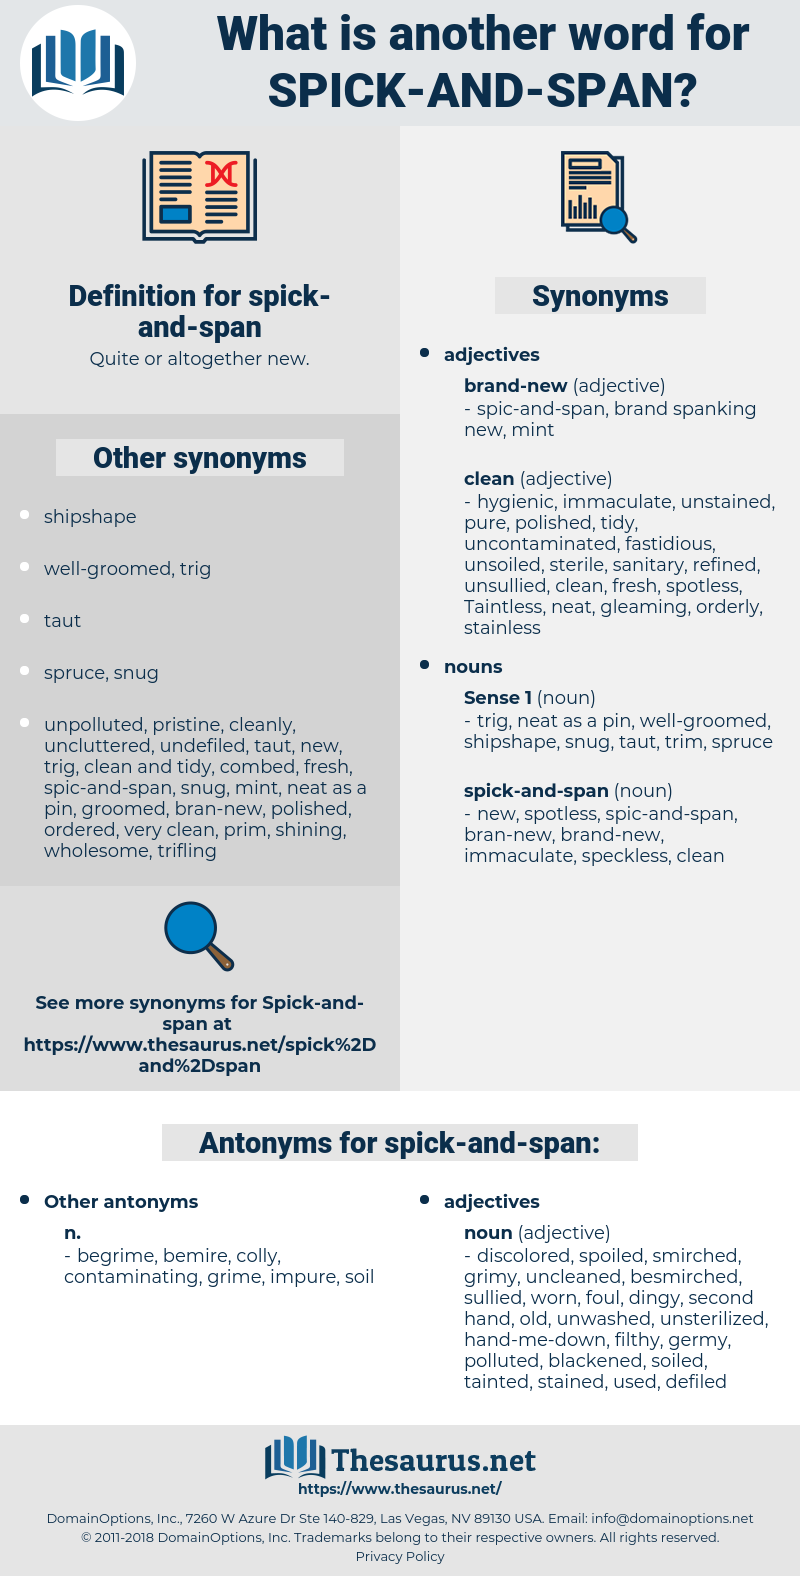 spick-and-span, synonym spick-and-span, another word for spick-and-span, words like spick-and-span, thesaurus spick-and-span